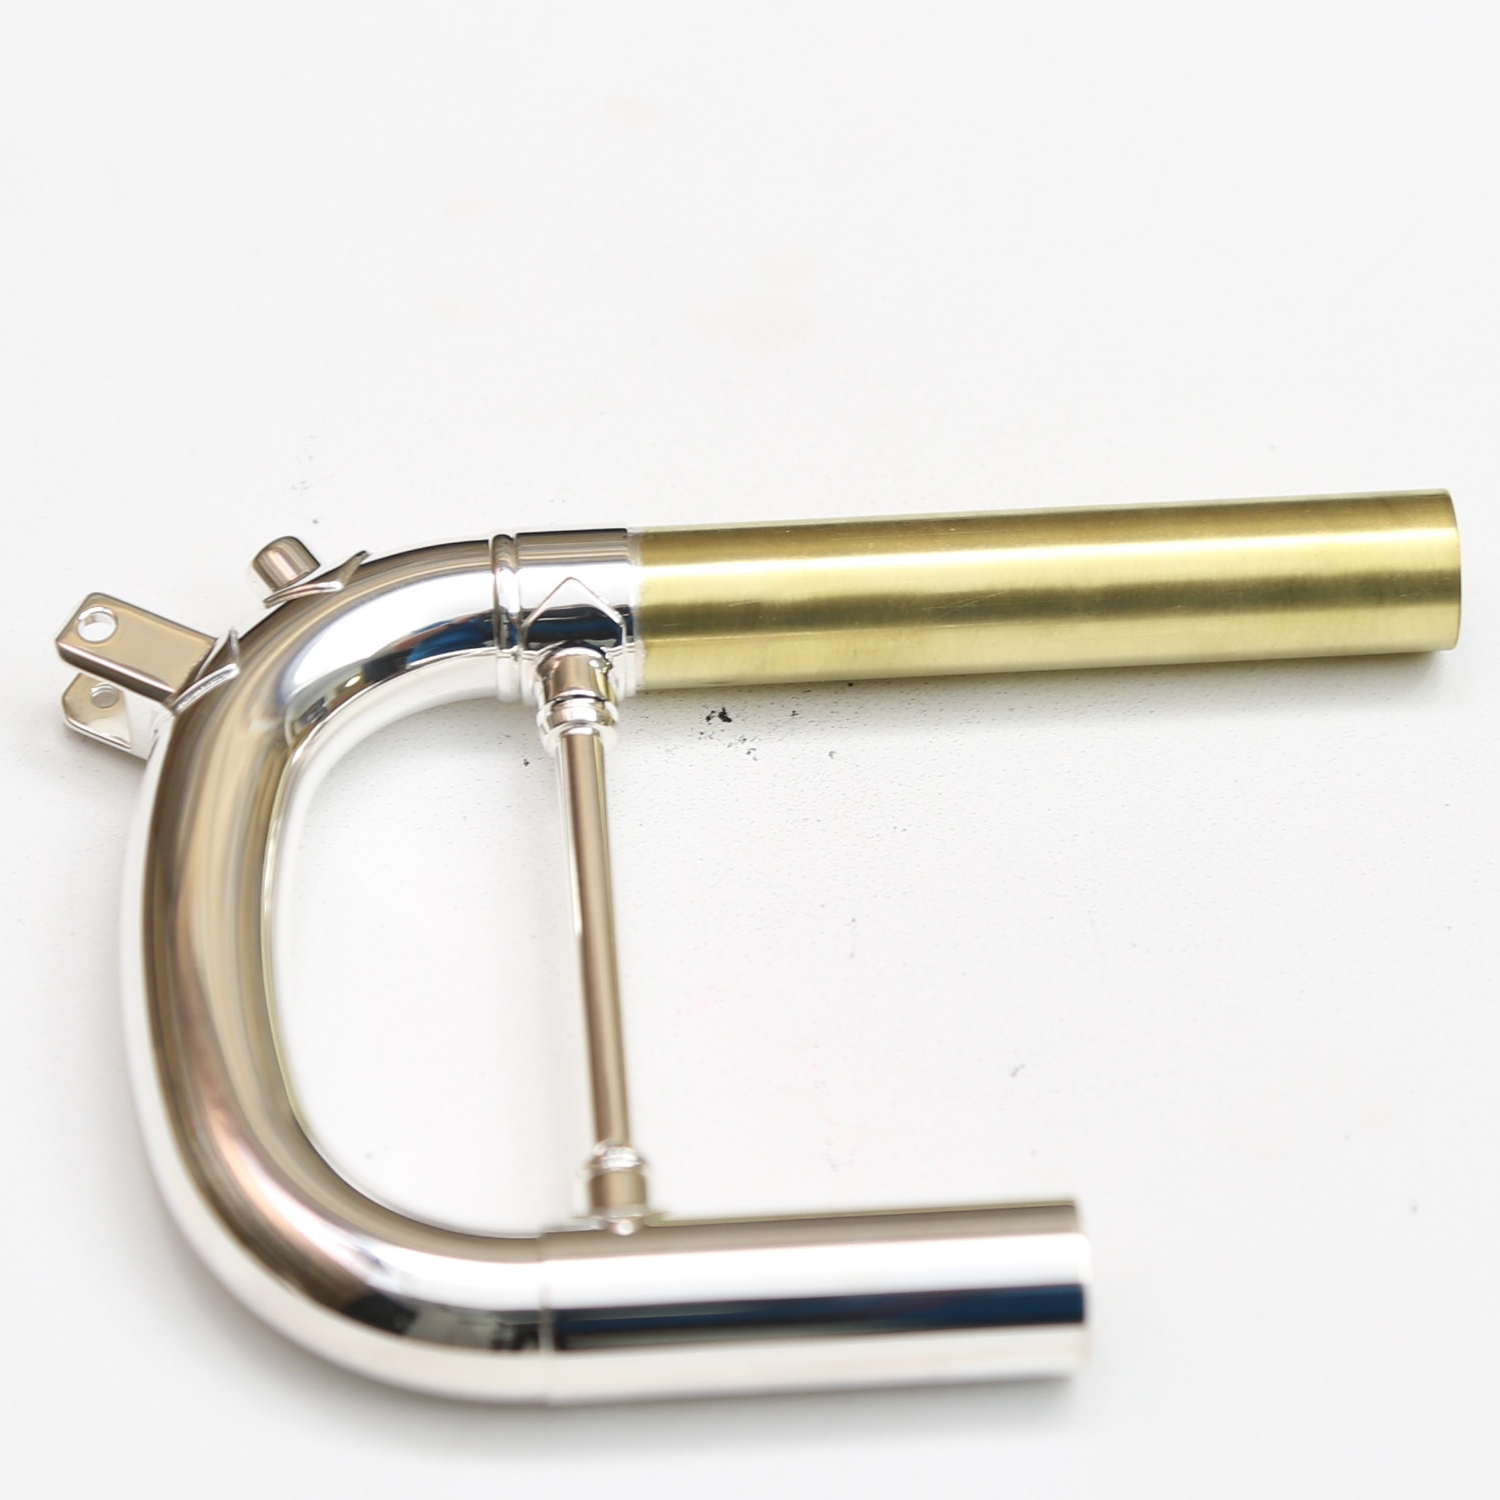 Mouthpiece Express : Yamaha Trumpet Tuning Slide Assembly